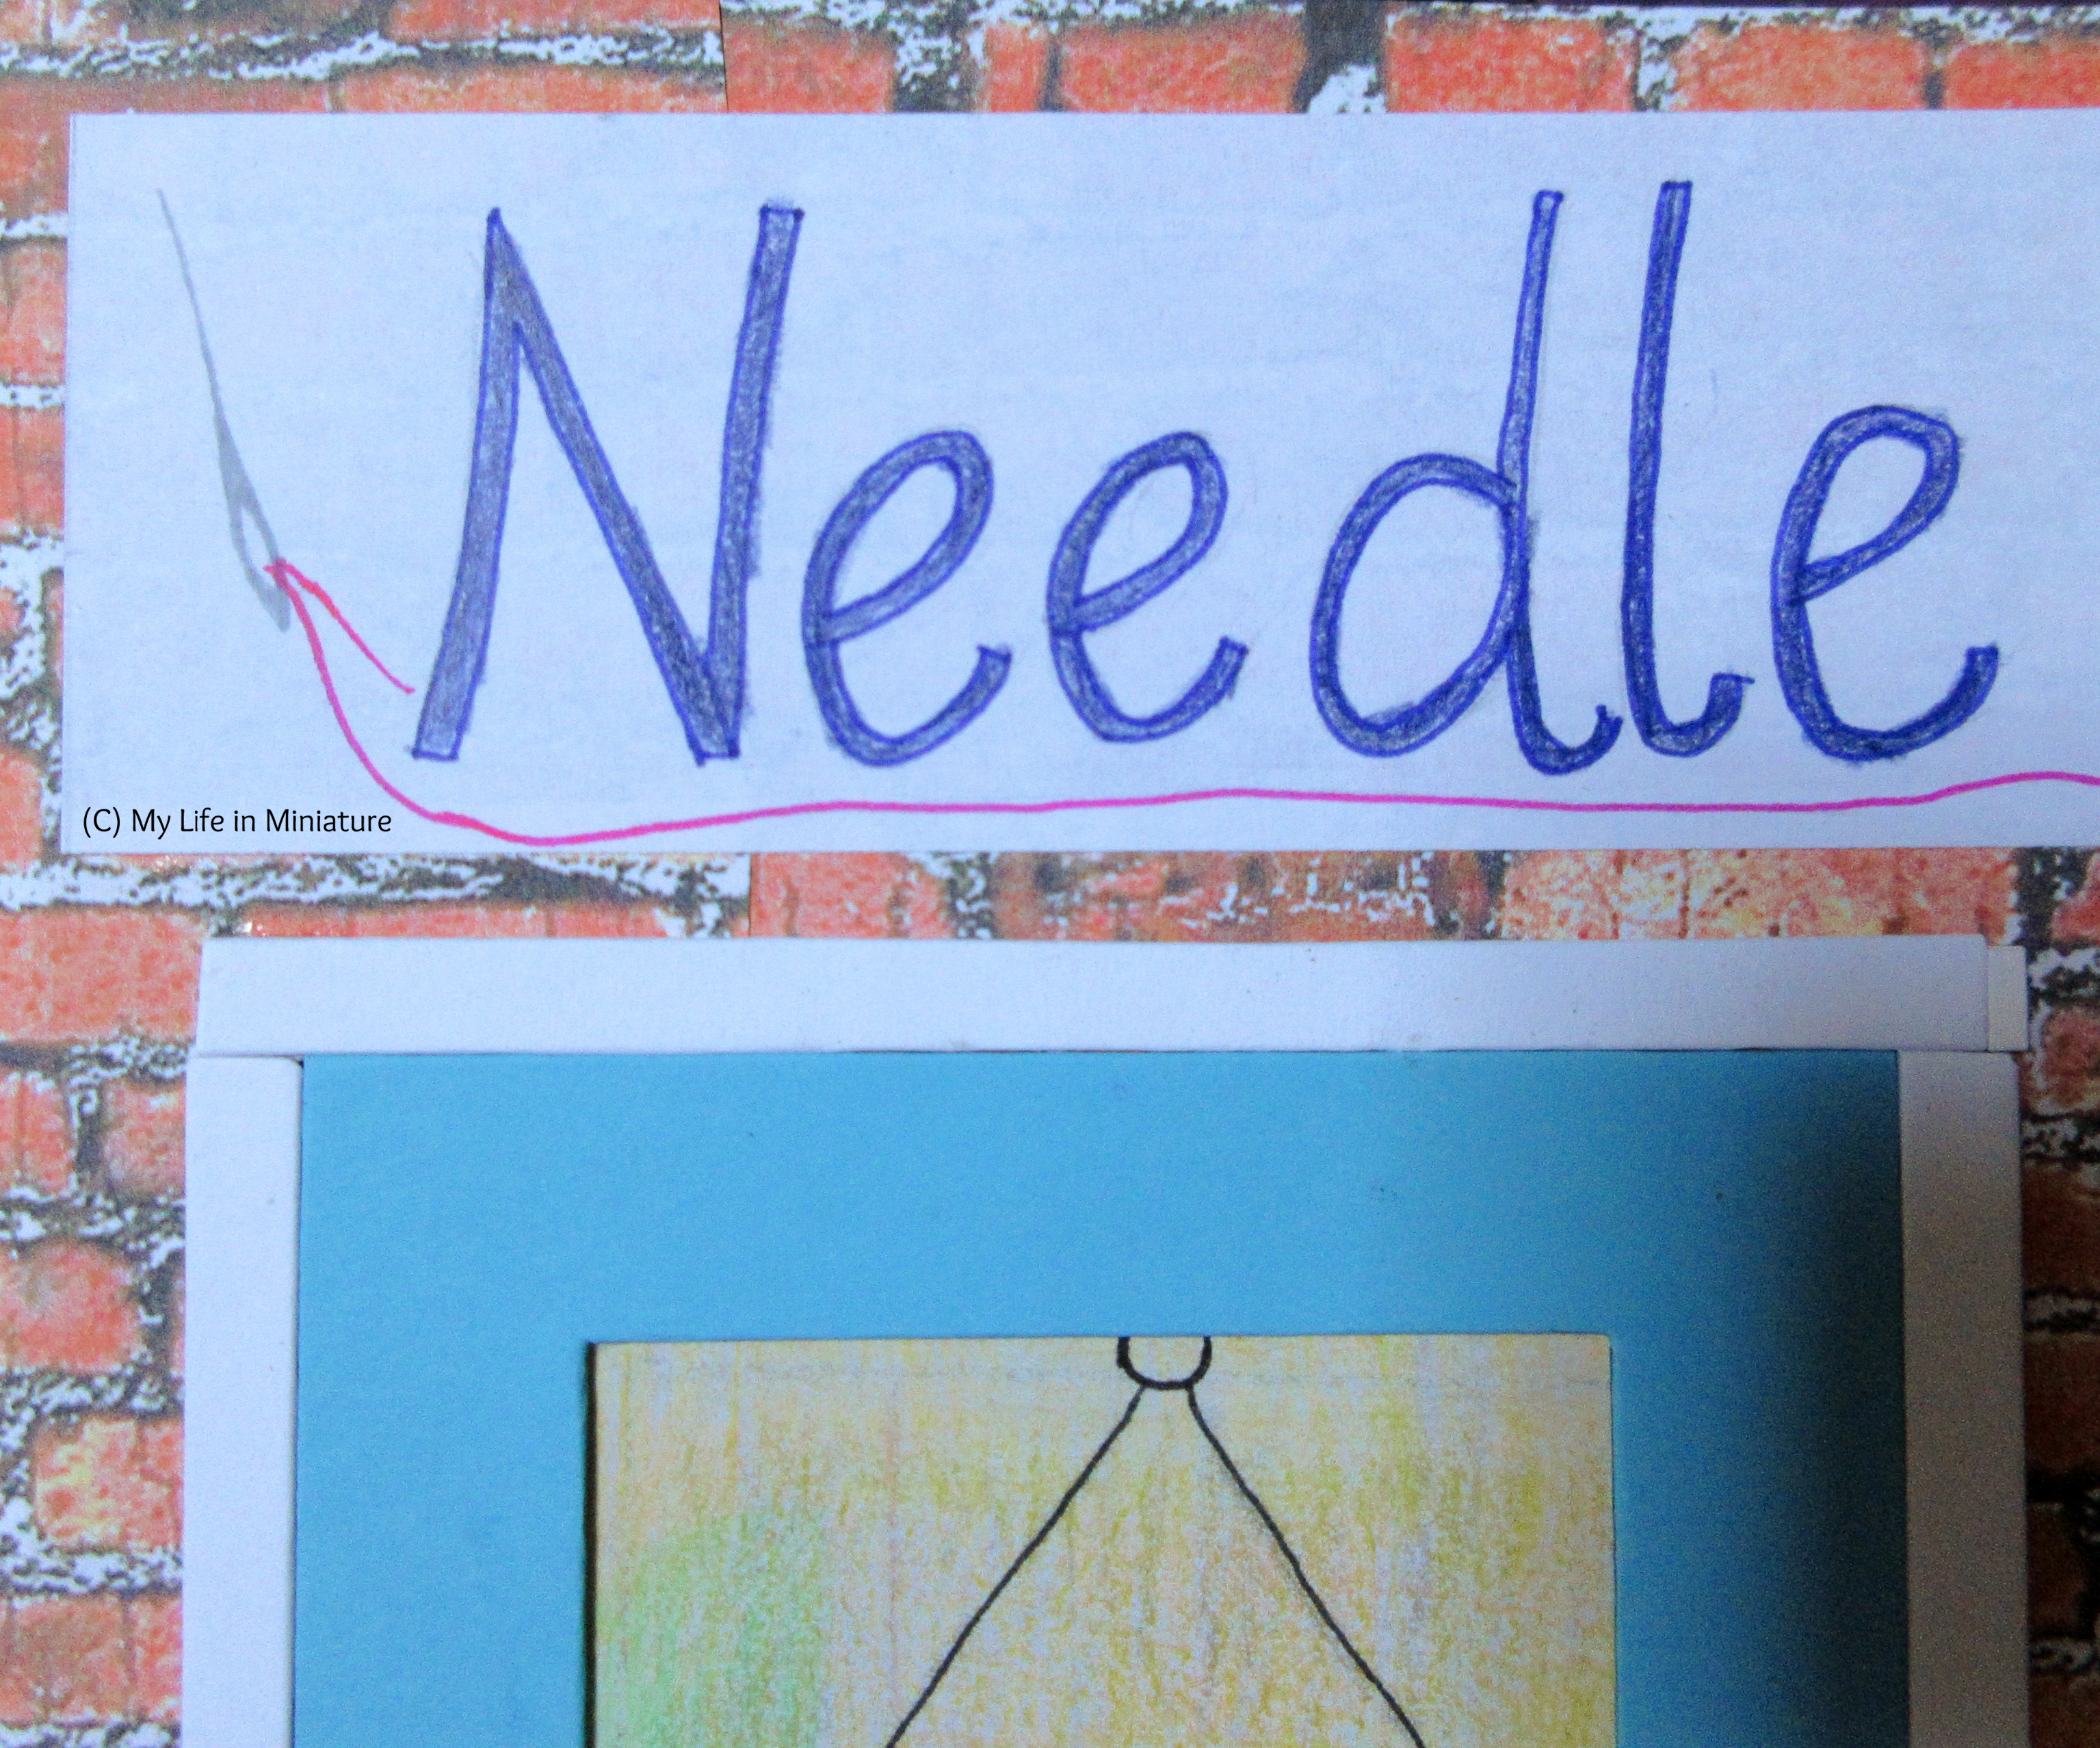 Close-up of the 'Needle' part of Needle & Thread's sign. a silver needle is visible, threaded with neon pink thread.